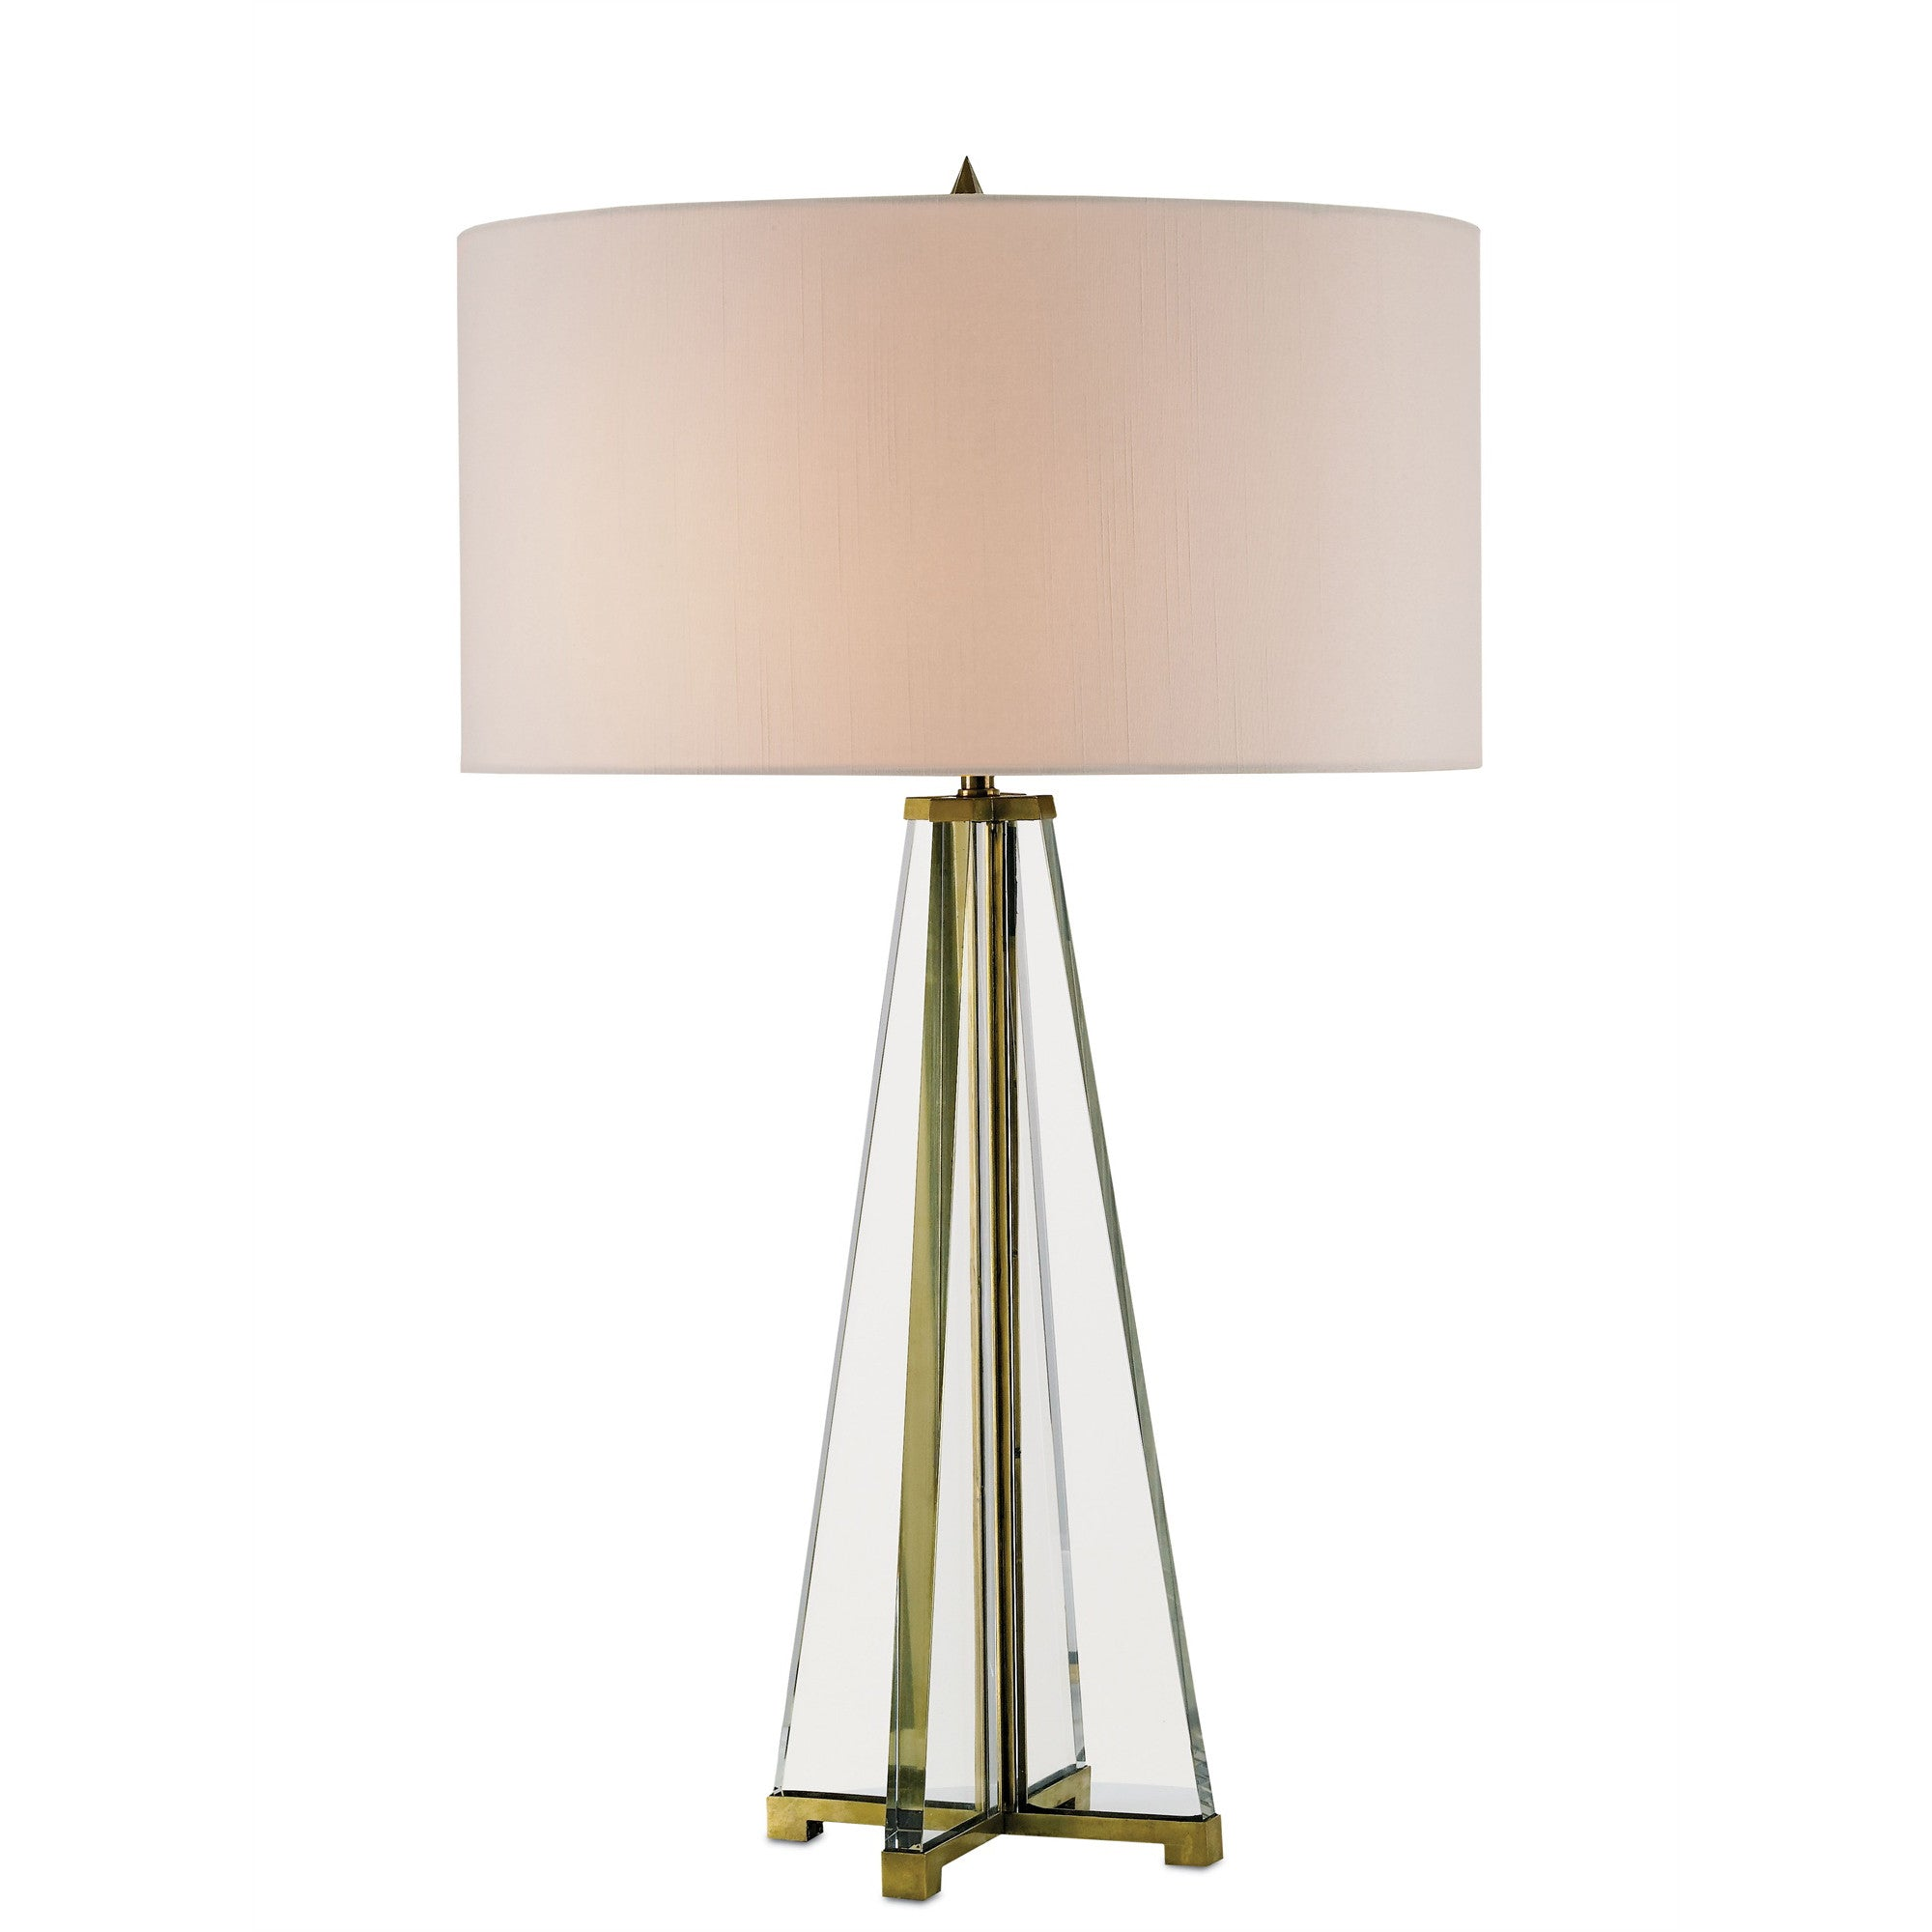 Currey and Co - Lamont Table Lamp